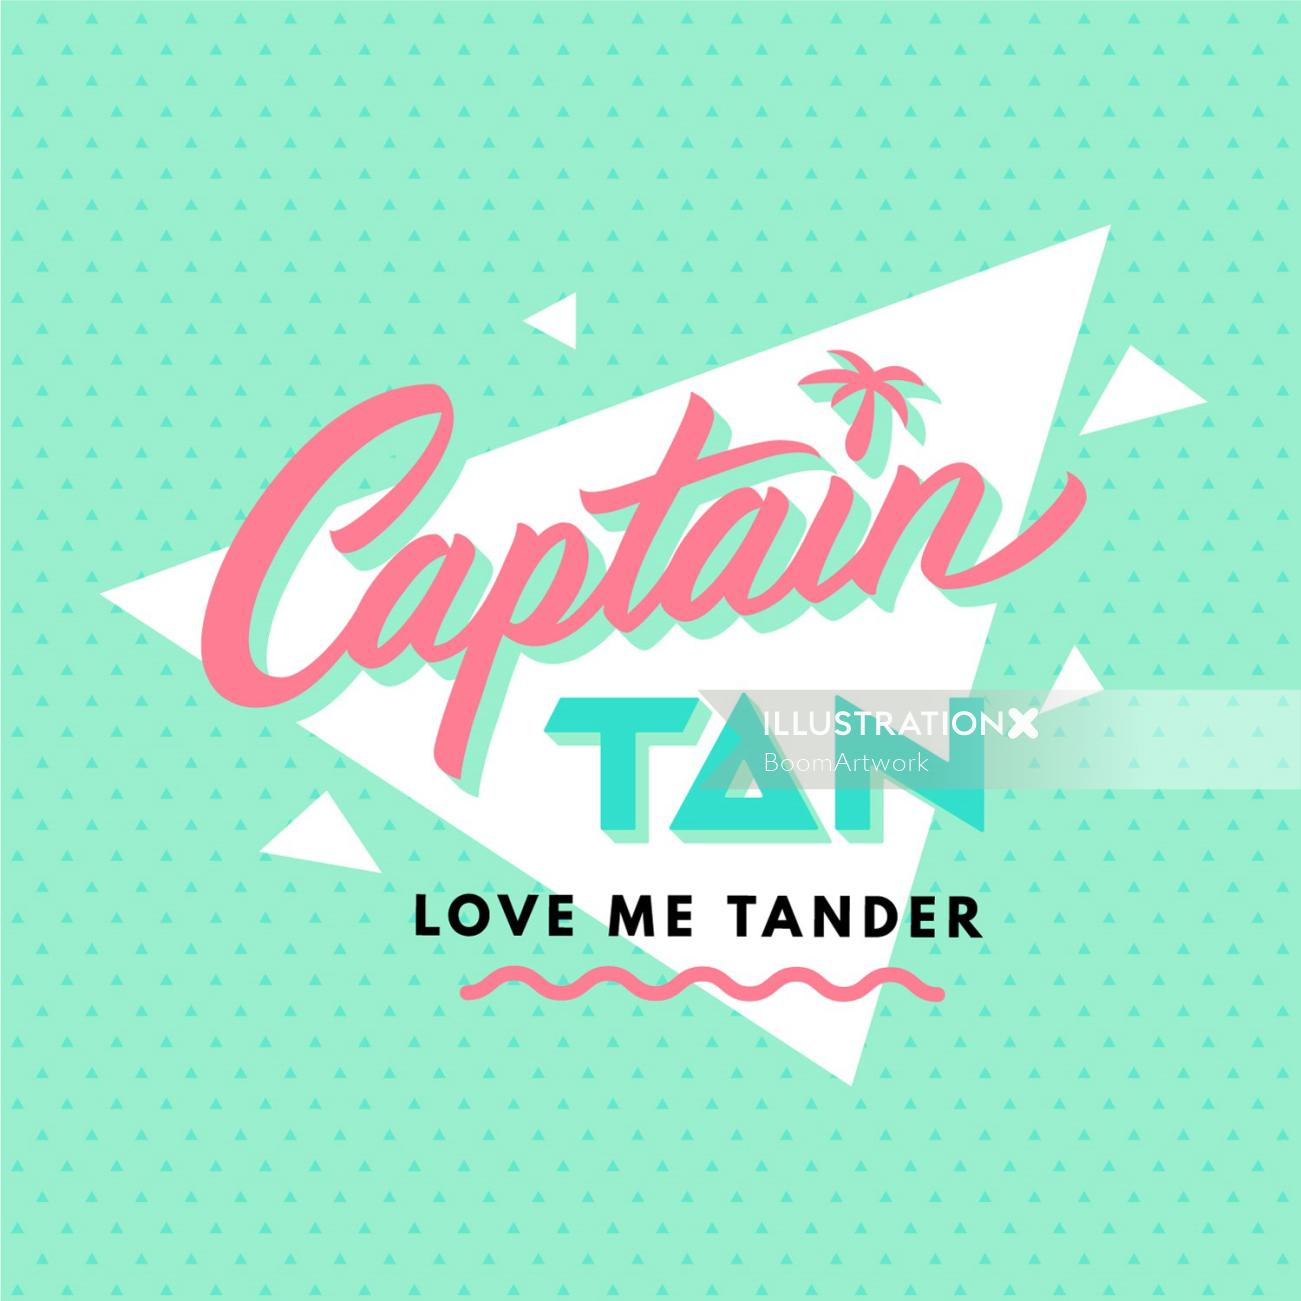 Captain tan love me tander lettering art